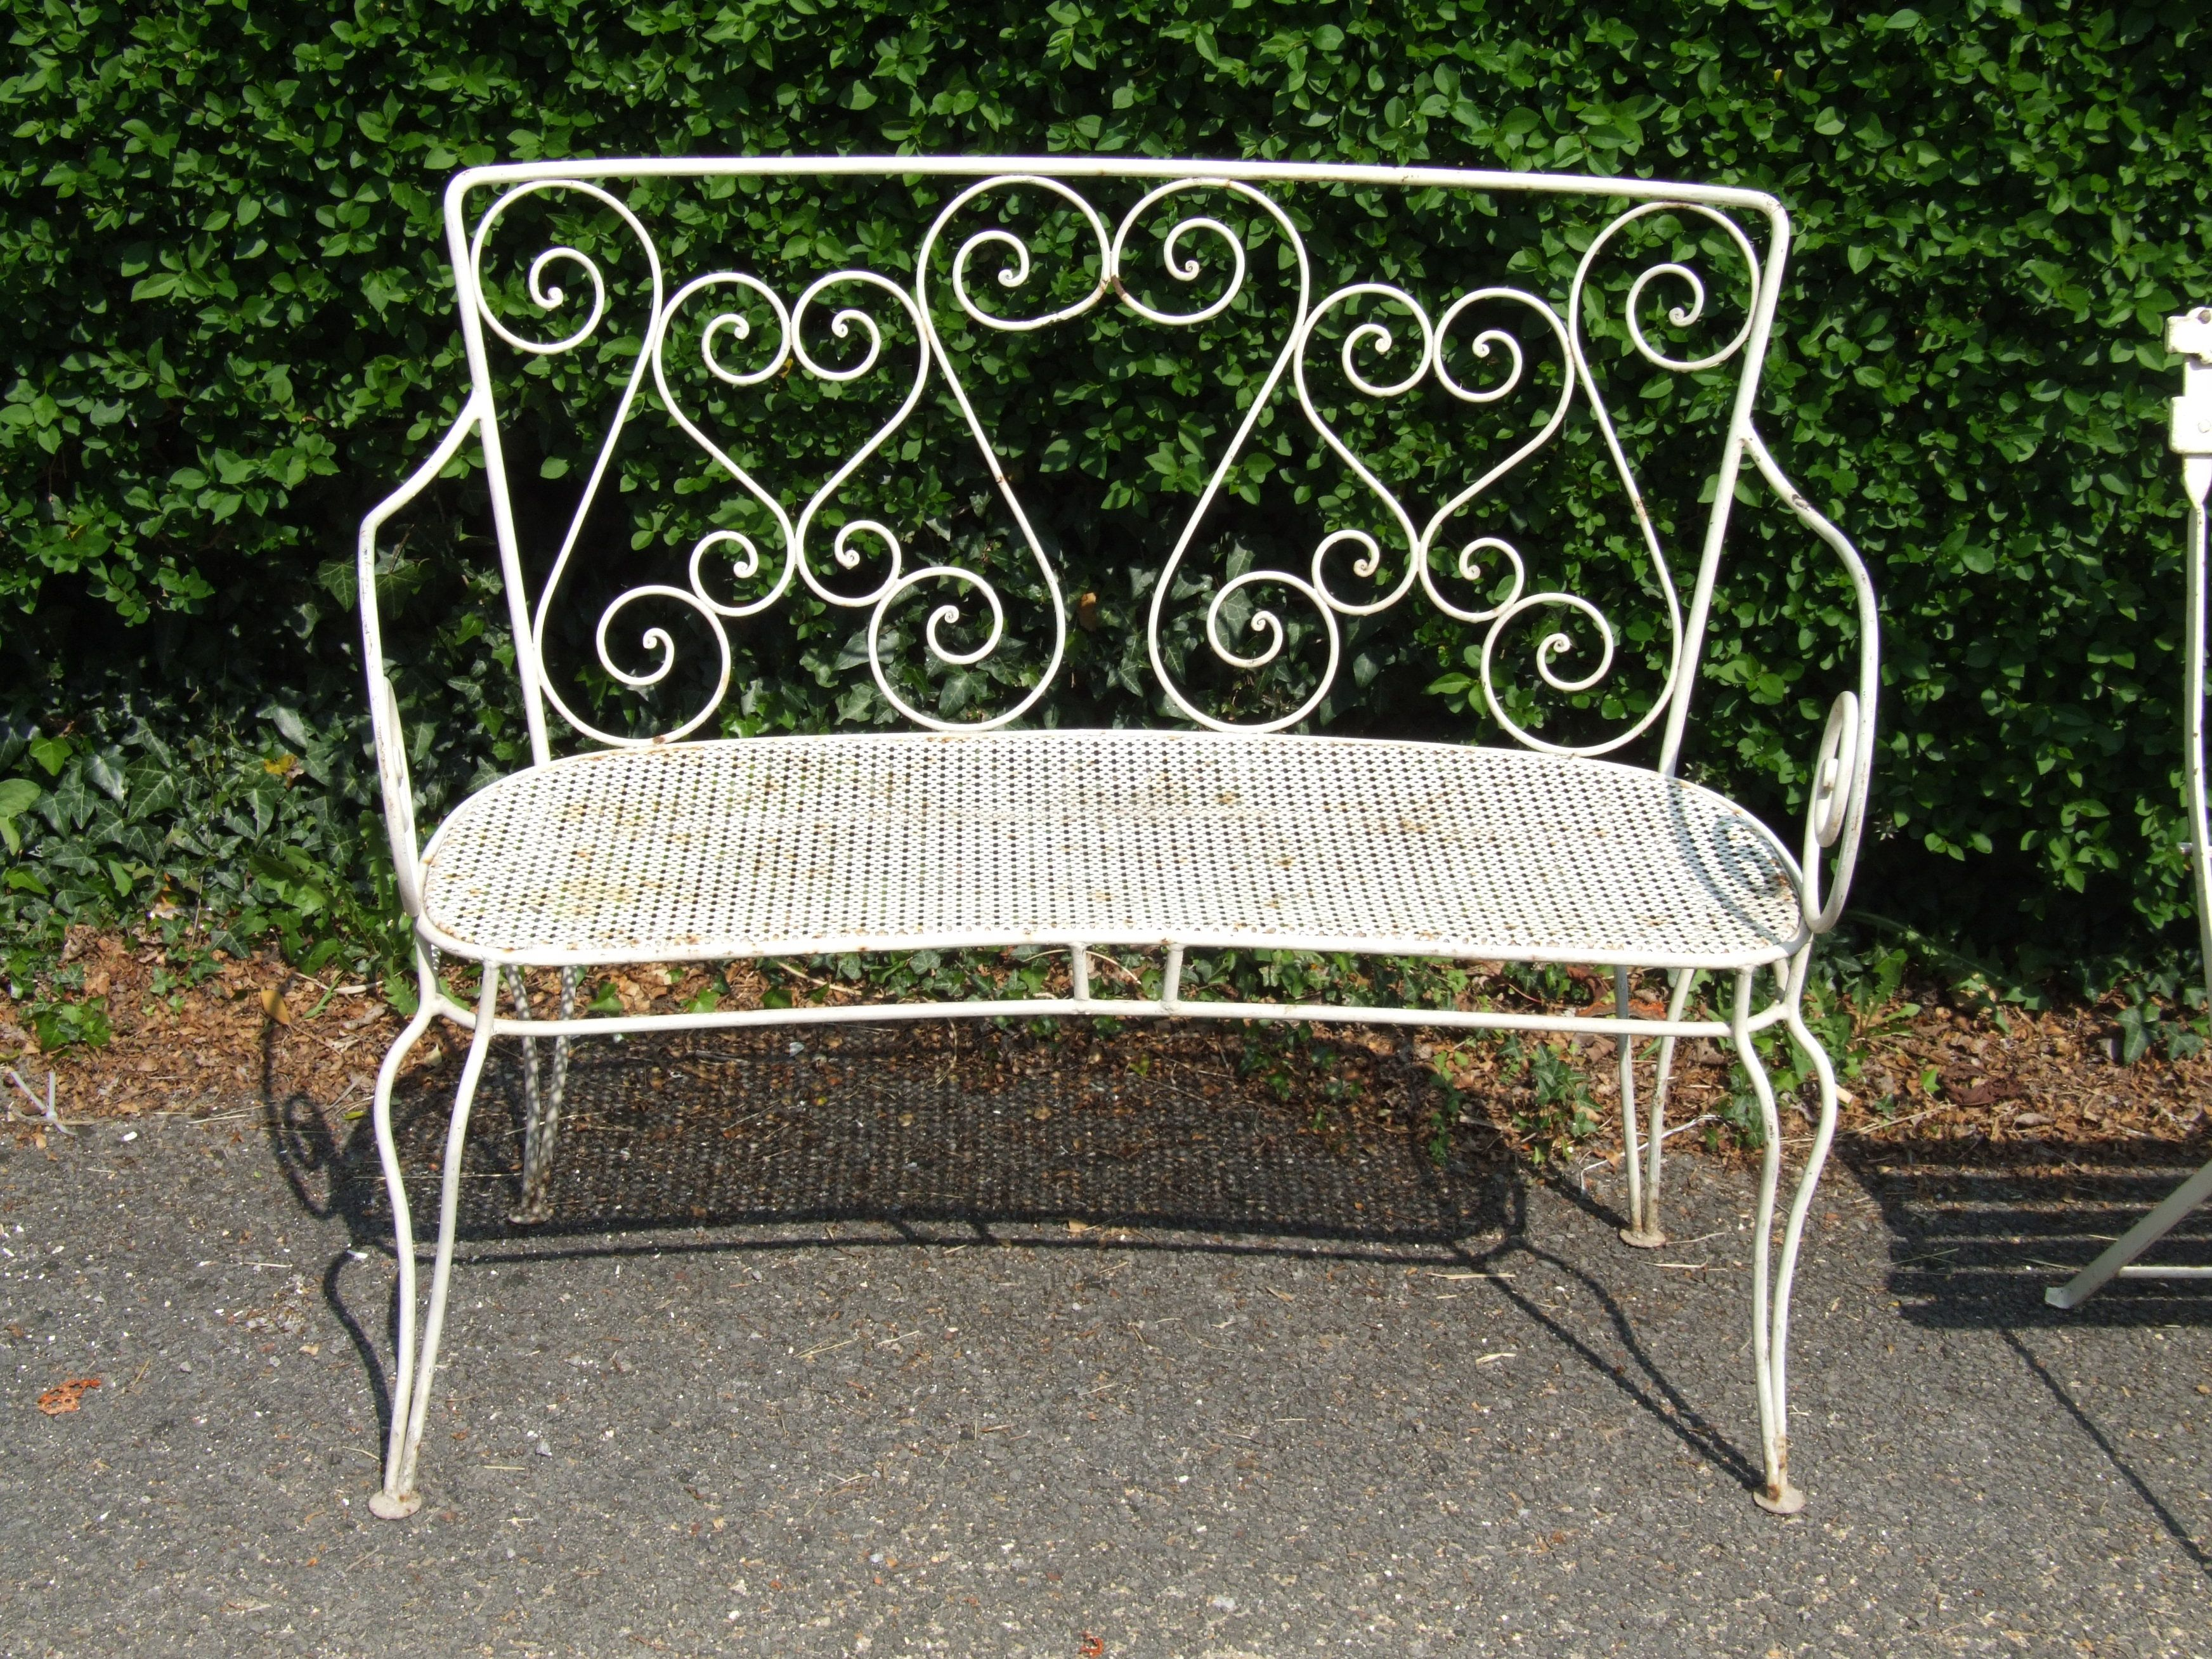 Phenomenal G088 Gorgeous Vintage French Wrought Iron Garden Bench Gmtry Best Dining Table And Chair Ideas Images Gmtryco